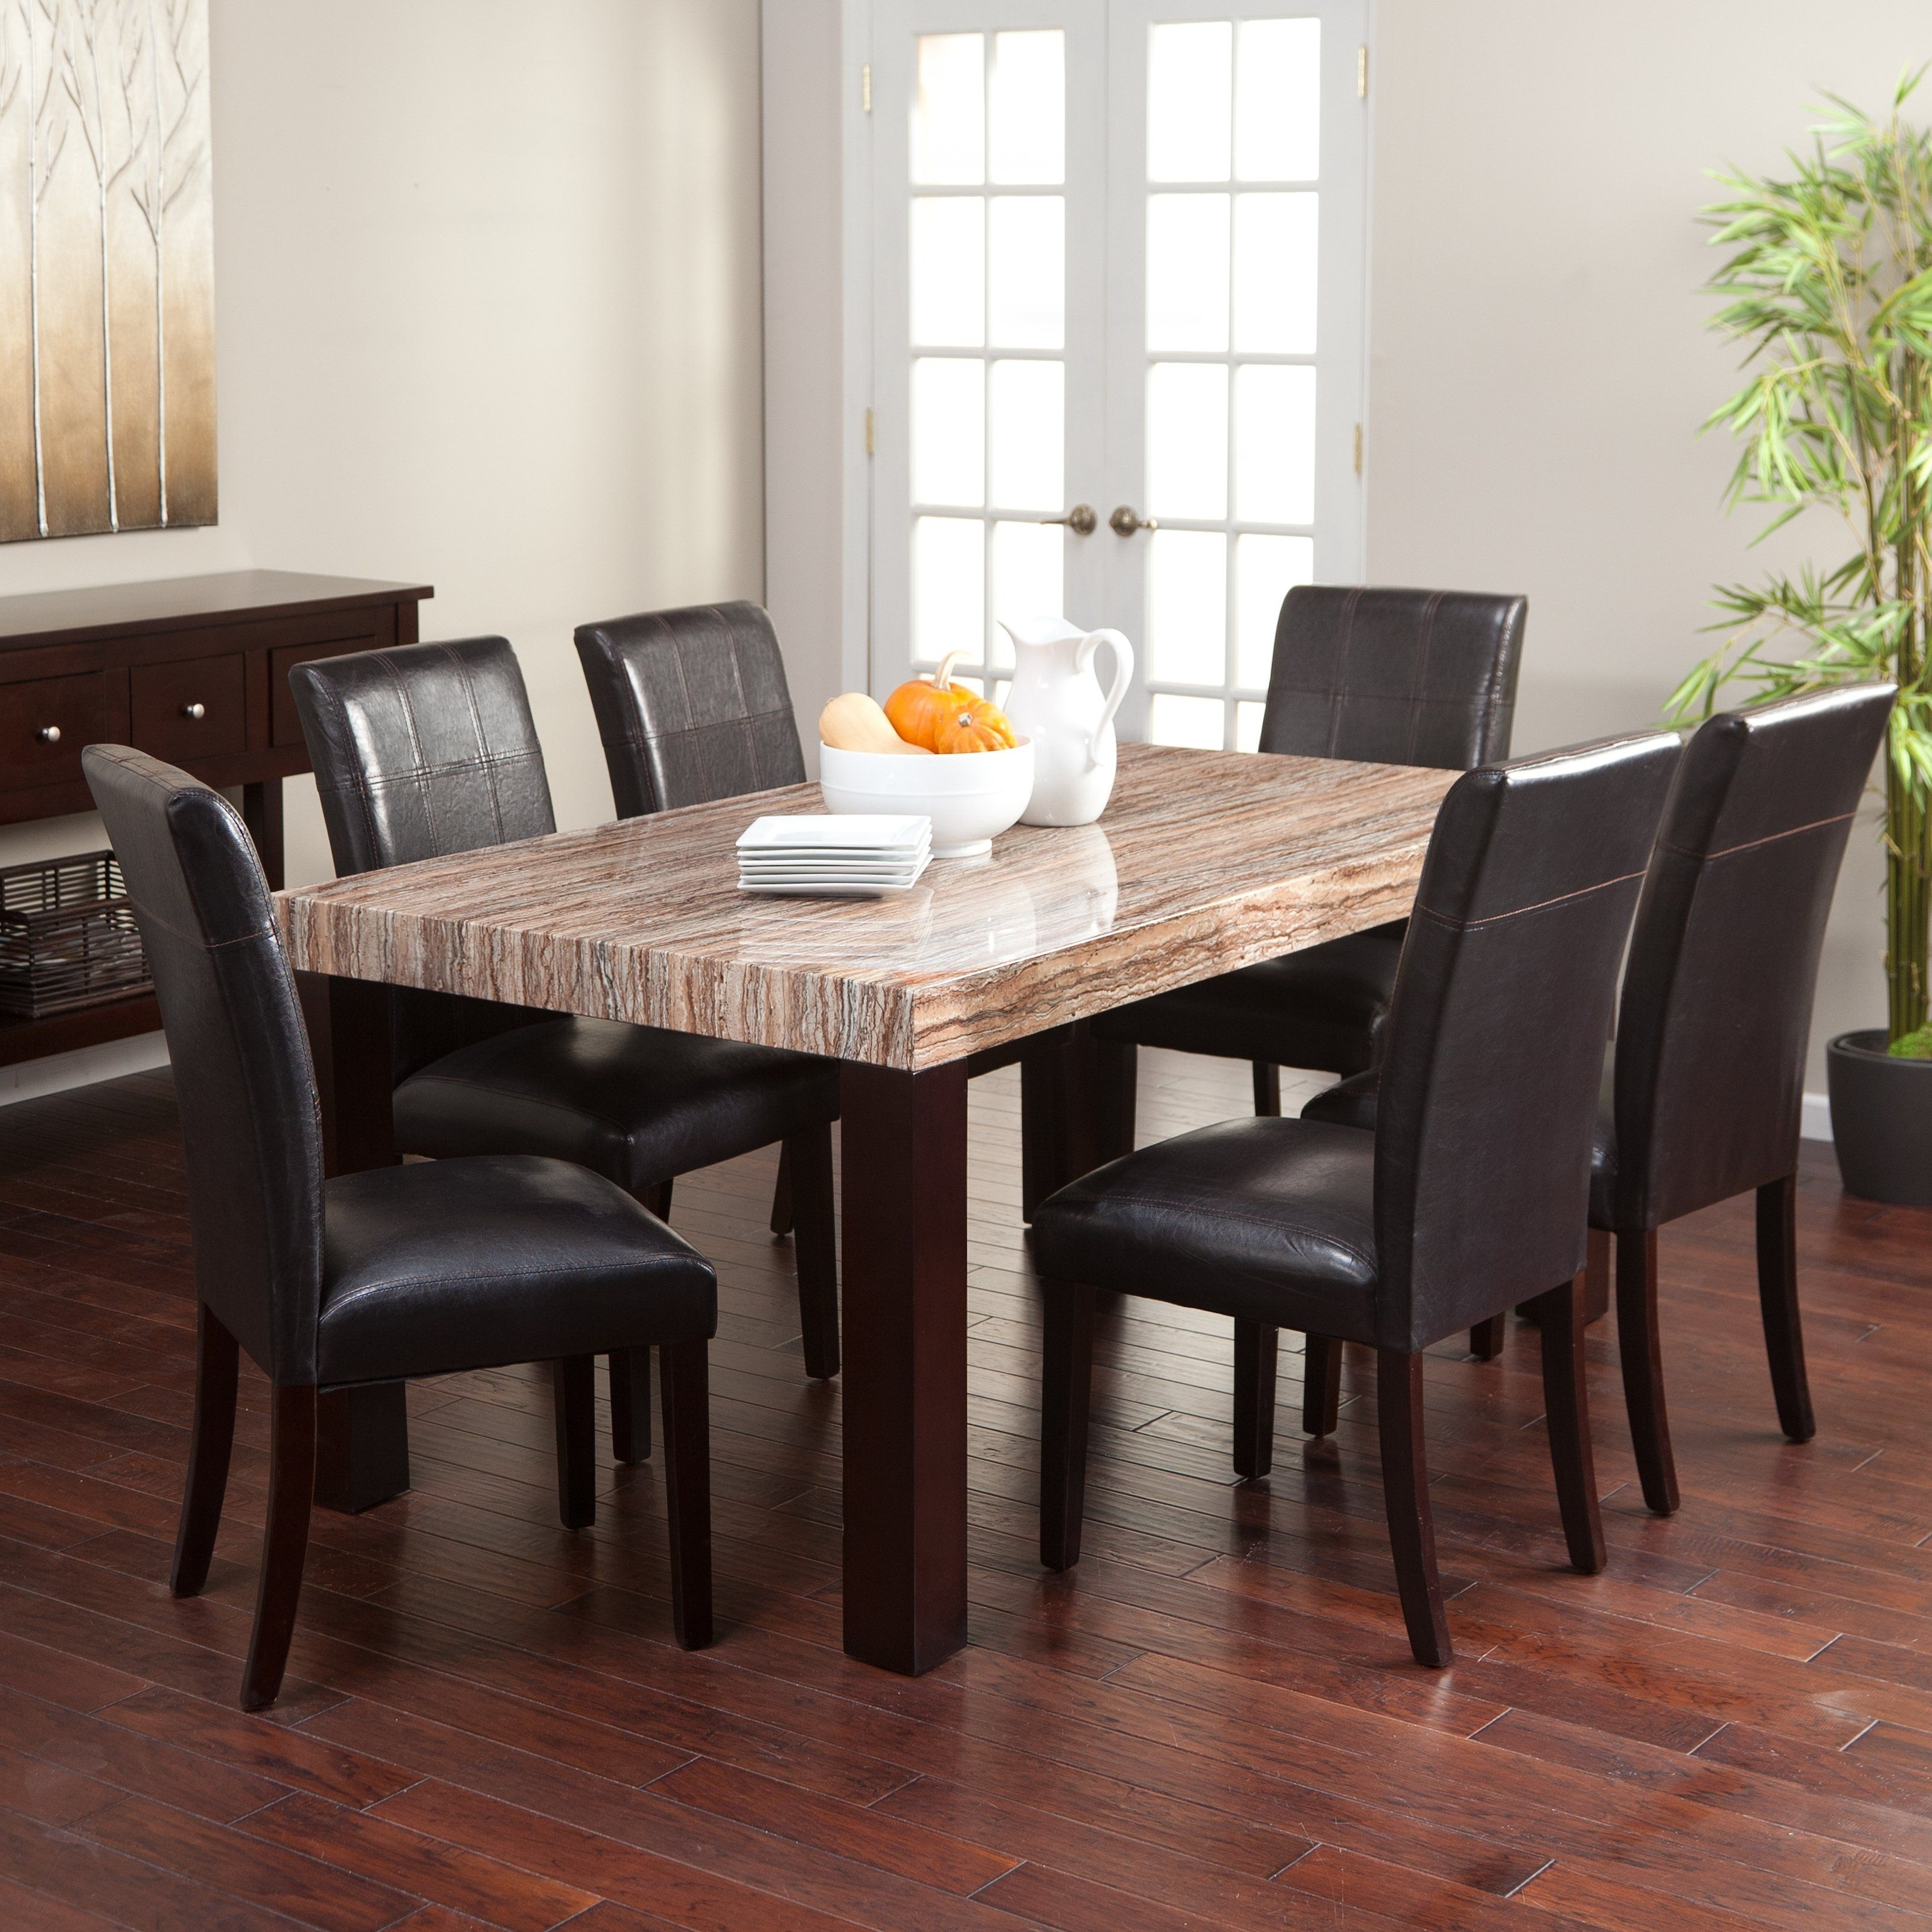 Carmine 7 Piece Dining Table Set – With Its Creamy Caramel Colored Within Most Popular Palazzo 7 Piece Rectangle Dining Sets With Joss Side Chairs (Photo 7 of 20)